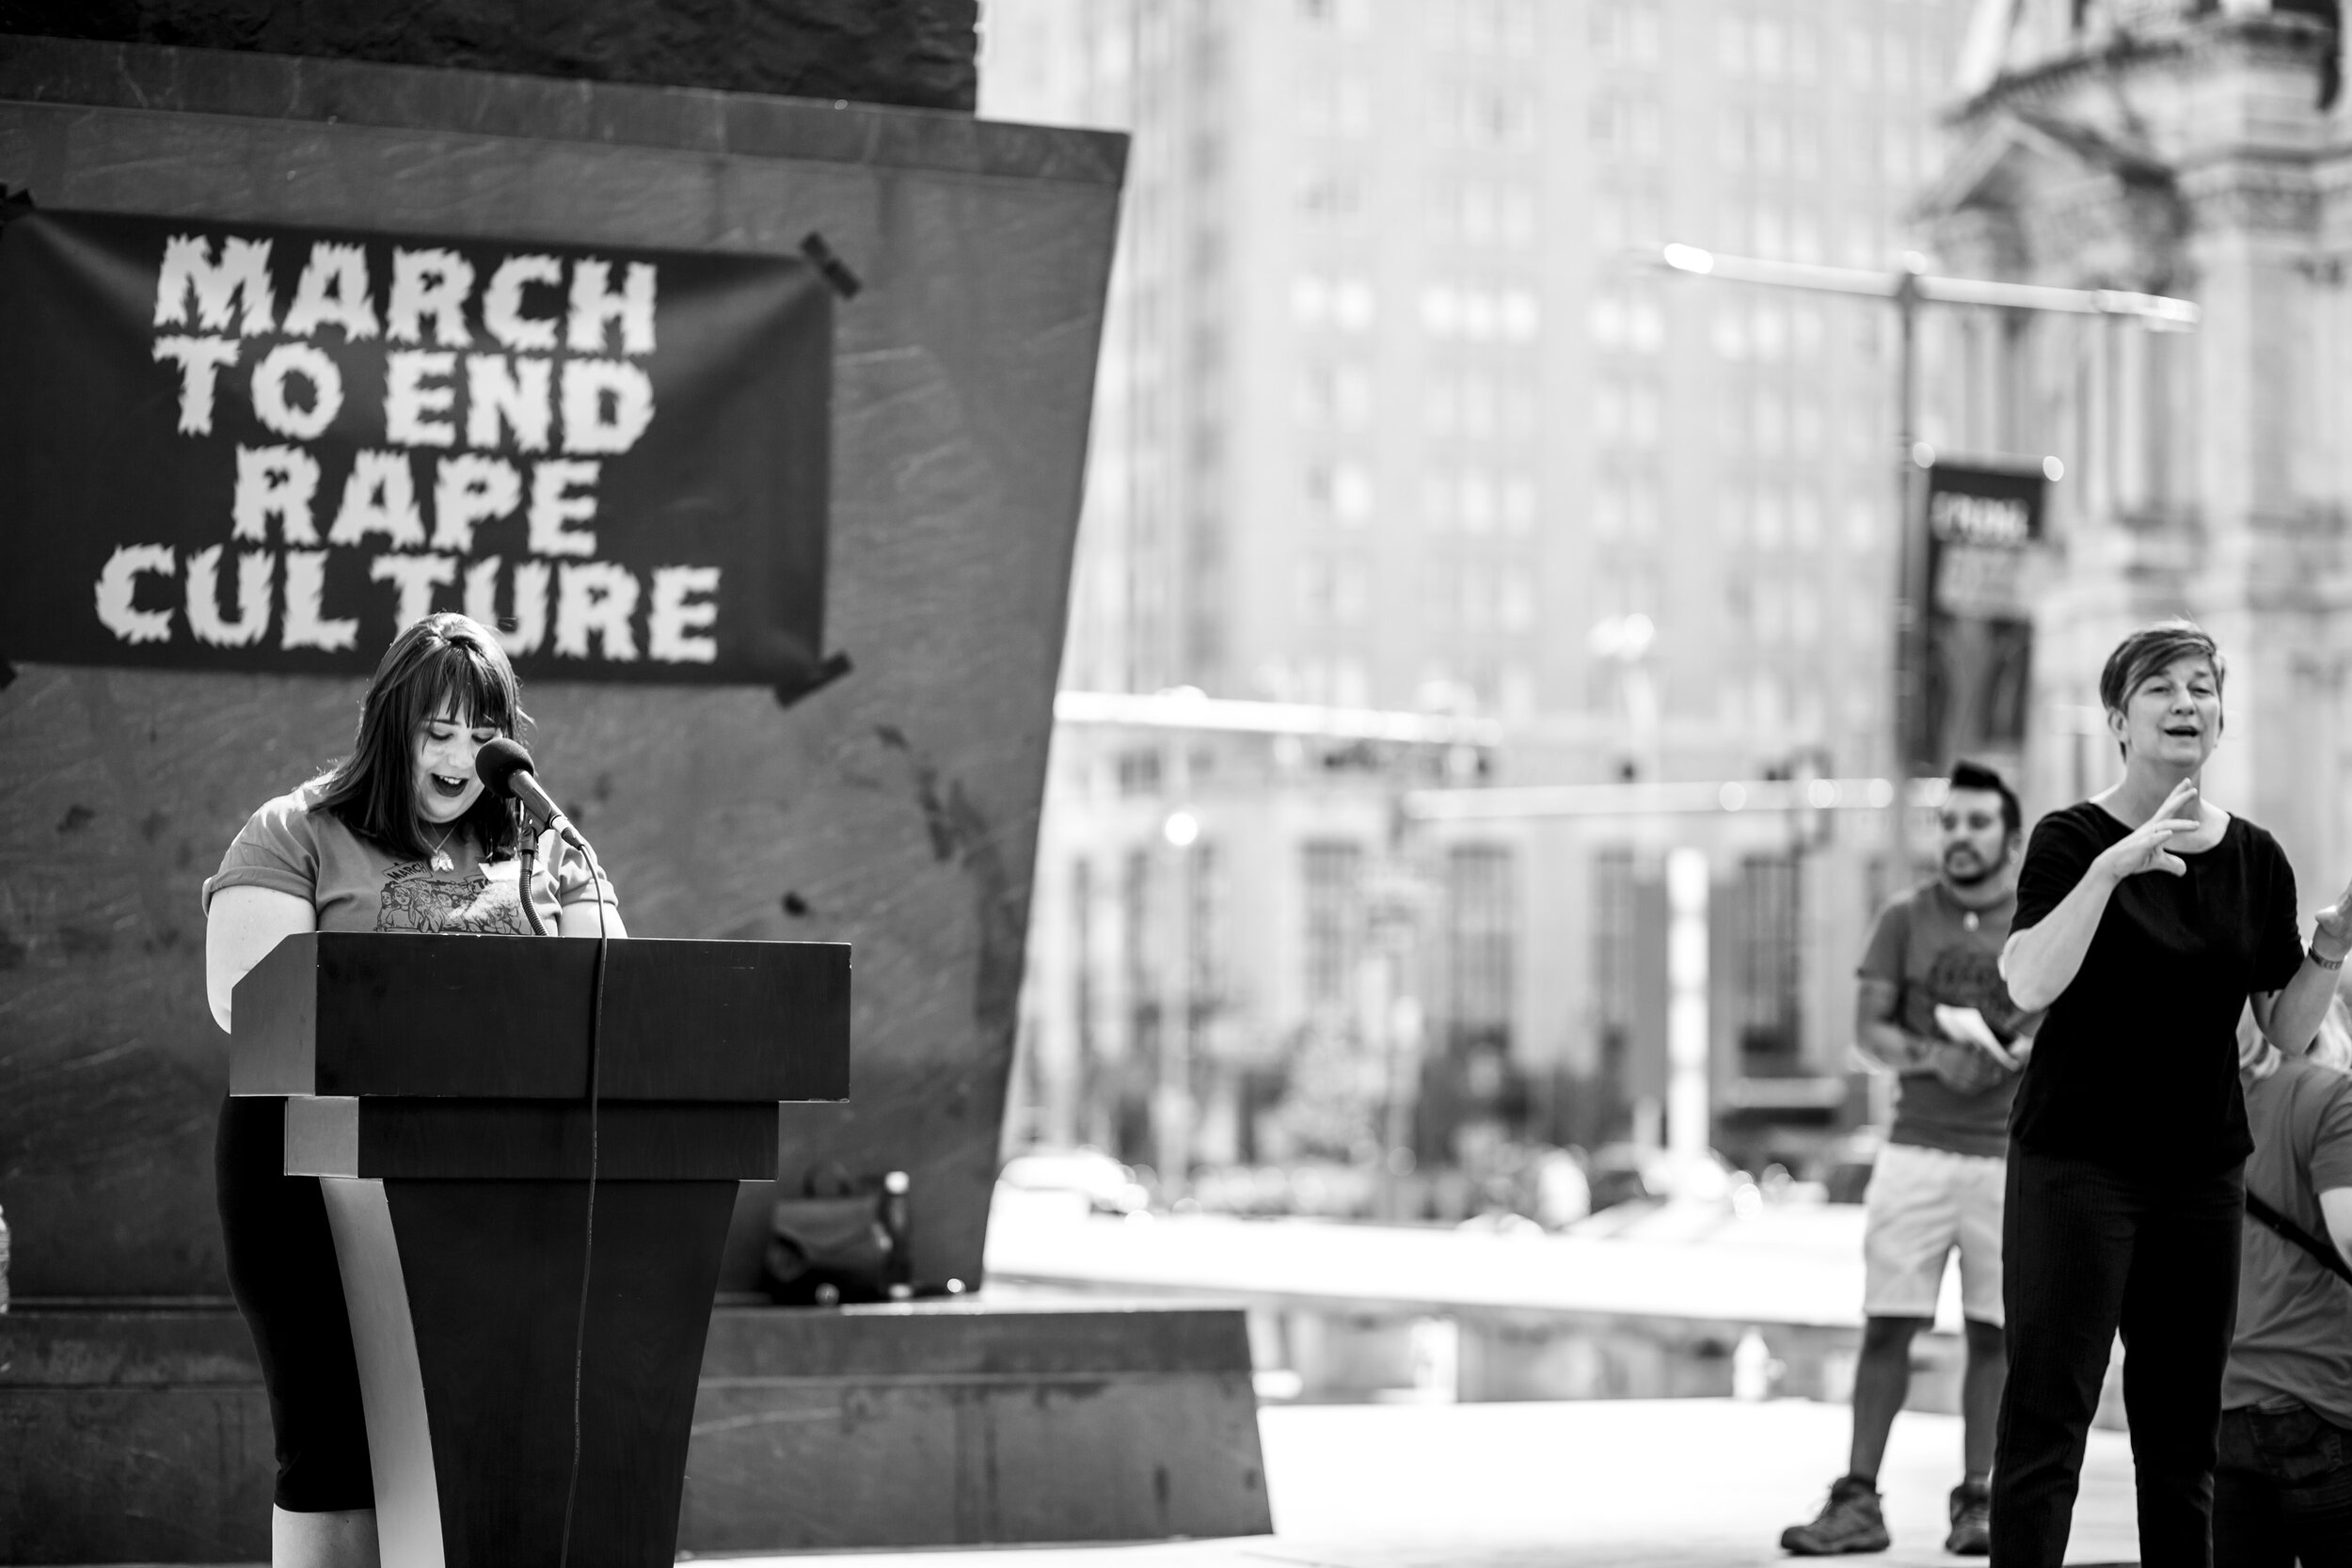 MarchToEndRapeCulture_2019_MikeArrison_BW_092919_0013.jpg